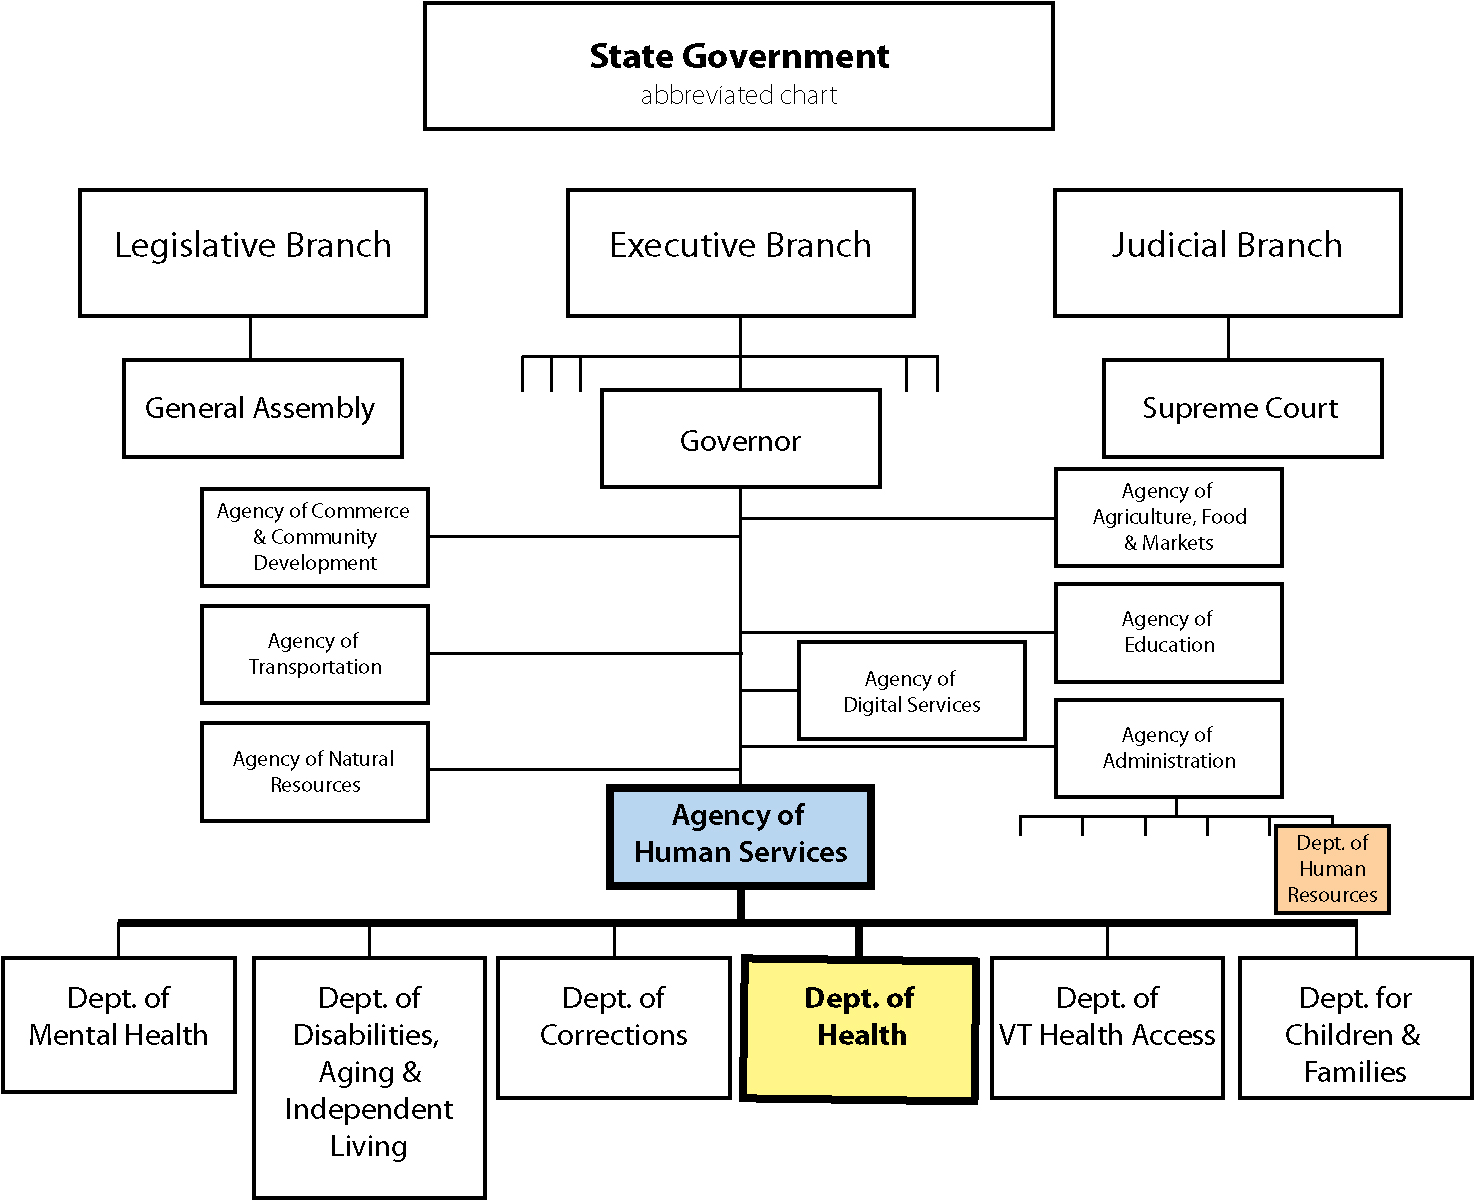 State government abbreviated org chart